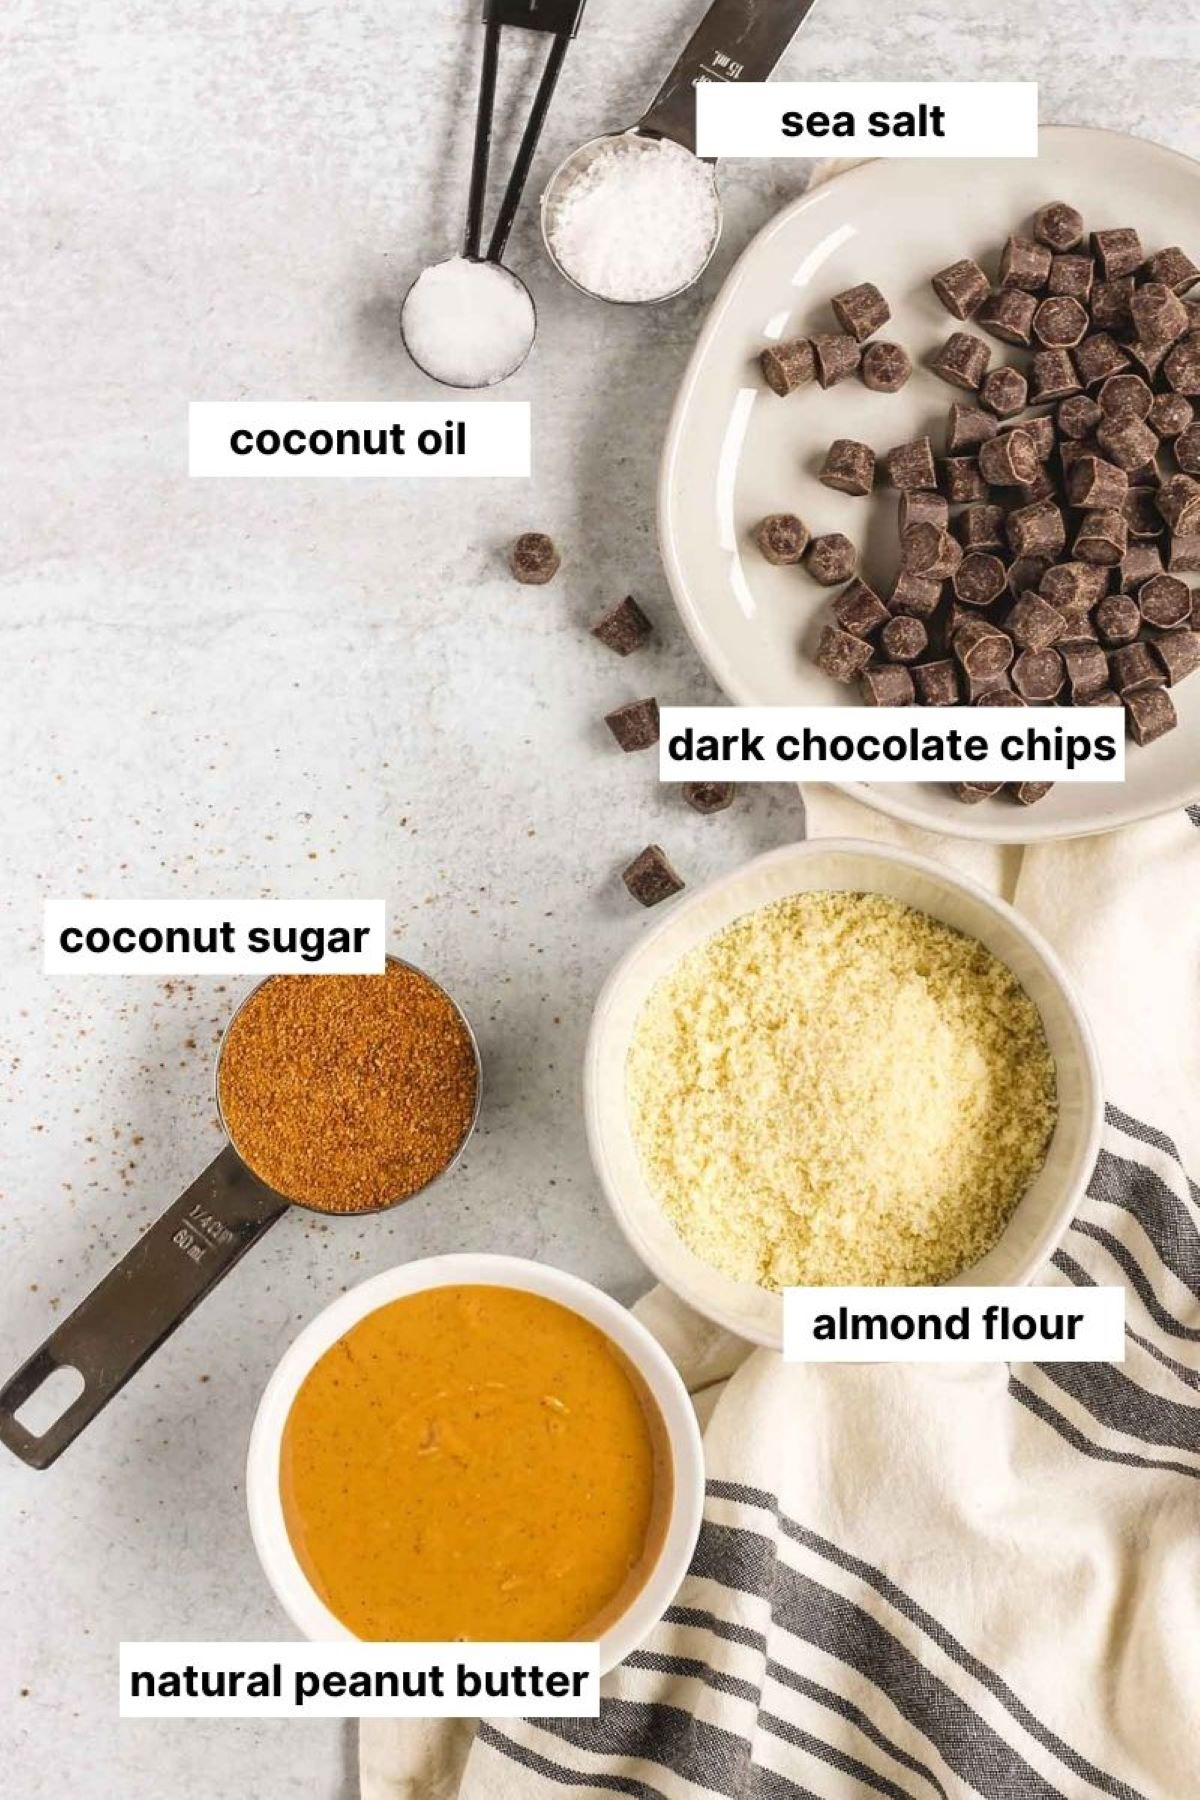 labeled ingredients used in this recipe